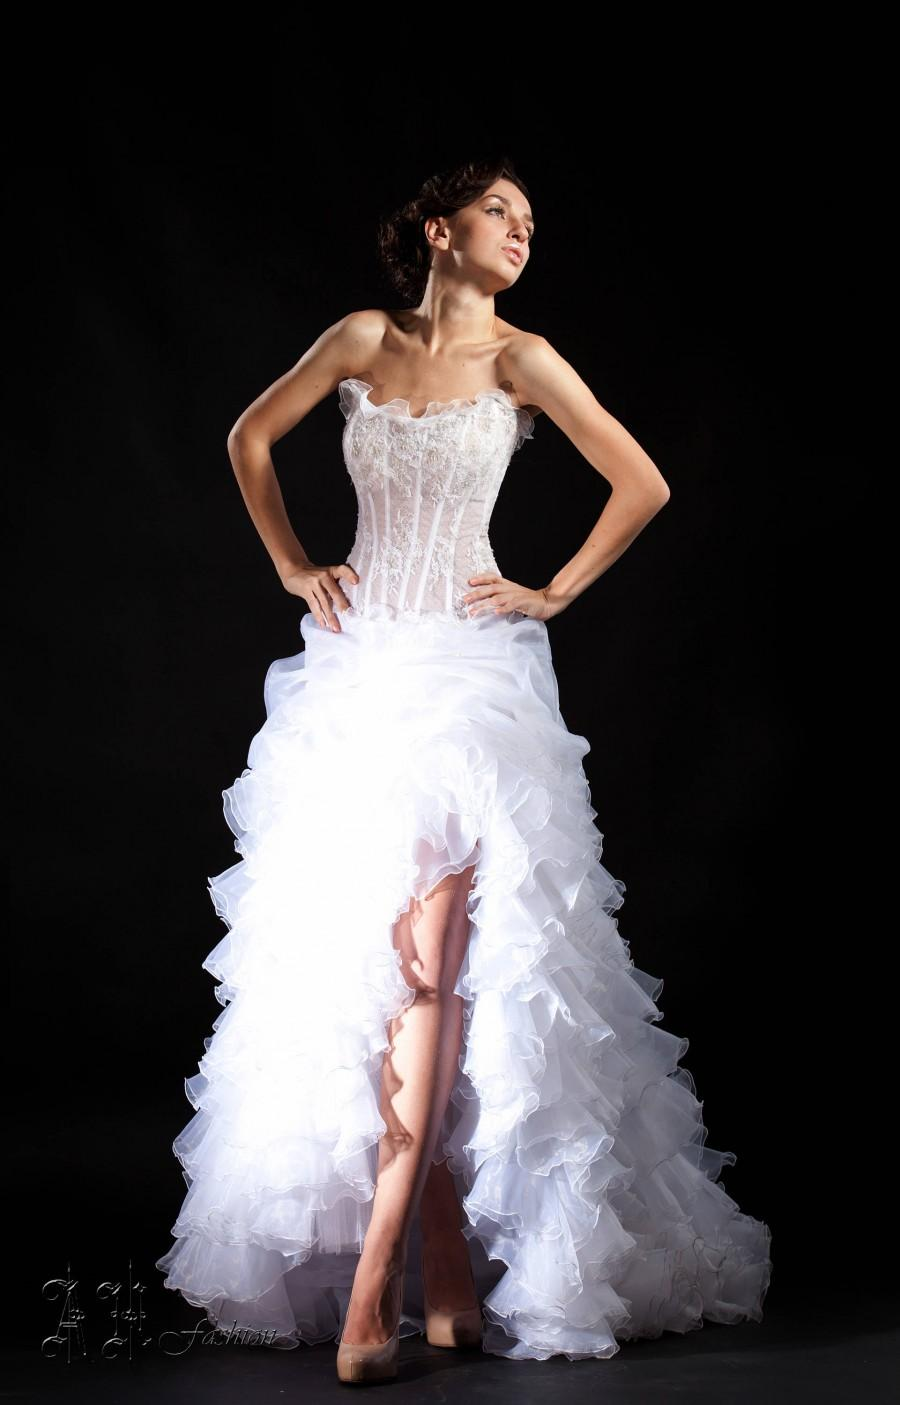 Mariage - Slit A-line Wedding Dress. Ruffle Bridal Dress. Strapless Wedding Dress With a Train.  Lace Corset.